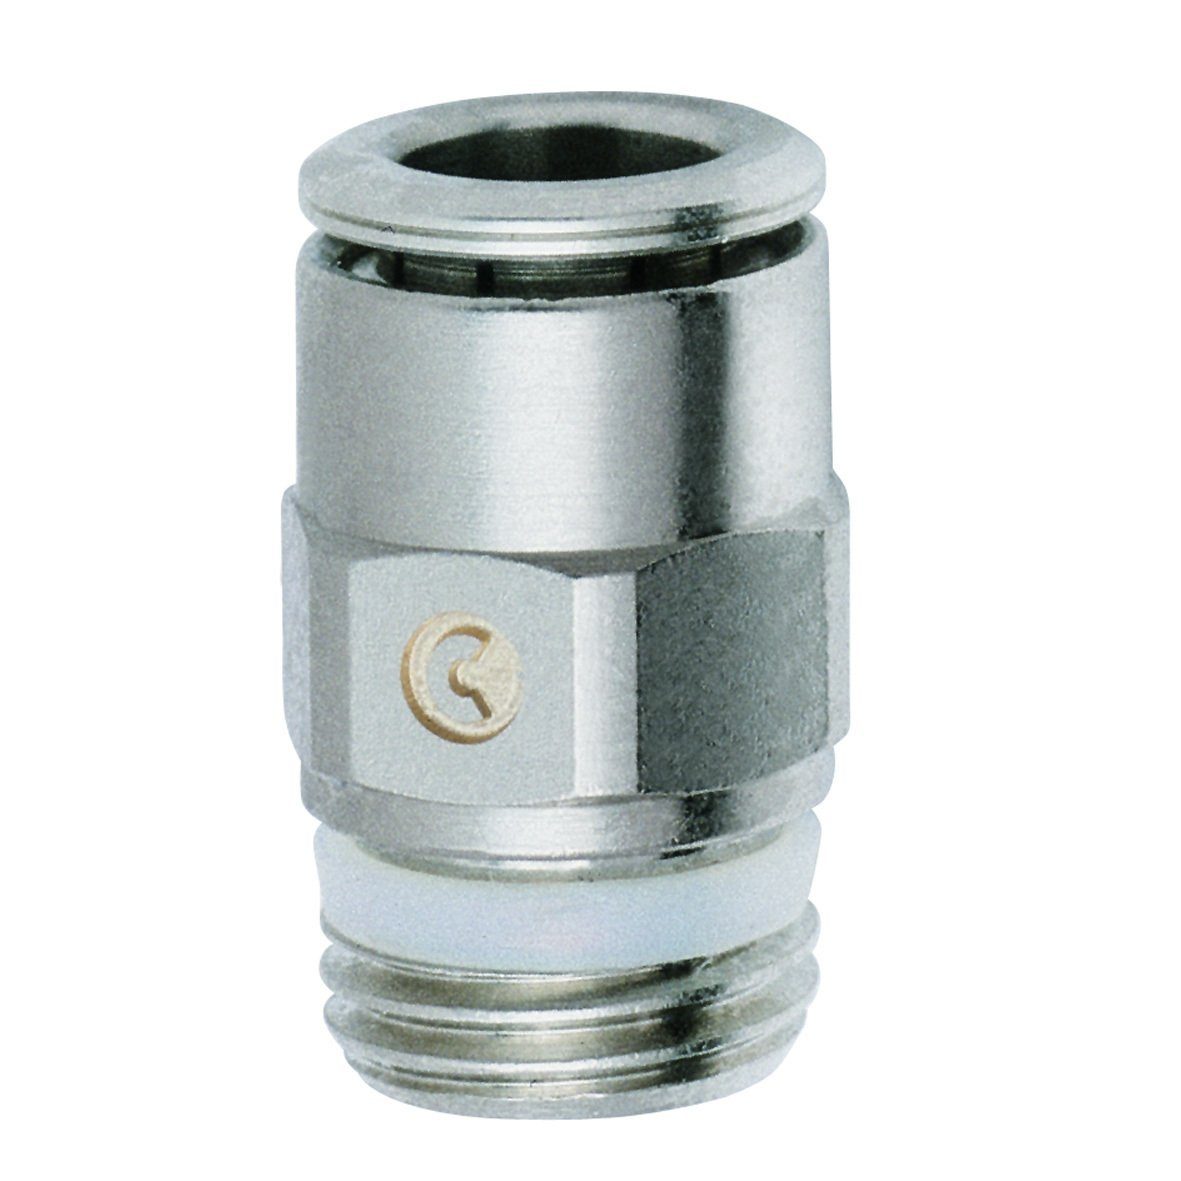 Camozzi Pro-Fit P6510 06-06 Tube Adapter, 3/8'' x 3/8'', Push-In Tube x NPTF 10 pack